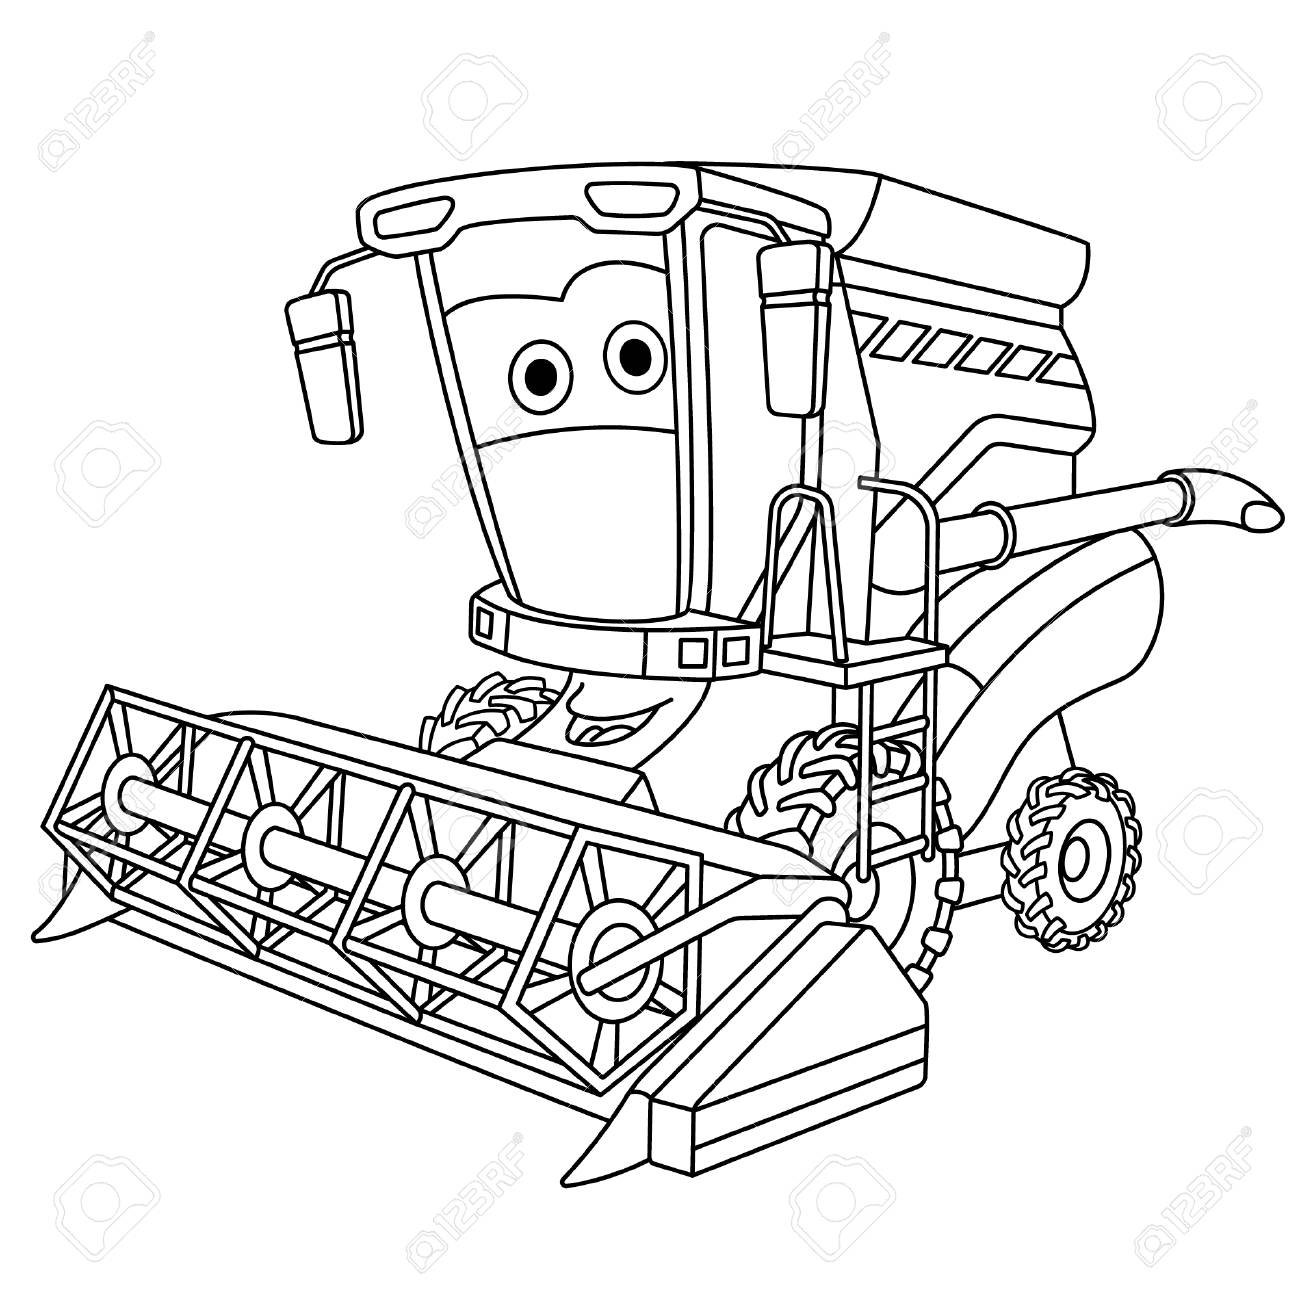 Coloring Page Colouring Picture Cute Cartoon Harvester Combine Royalty Free Cliparts Vectors And Stock Illustration Image 133814708